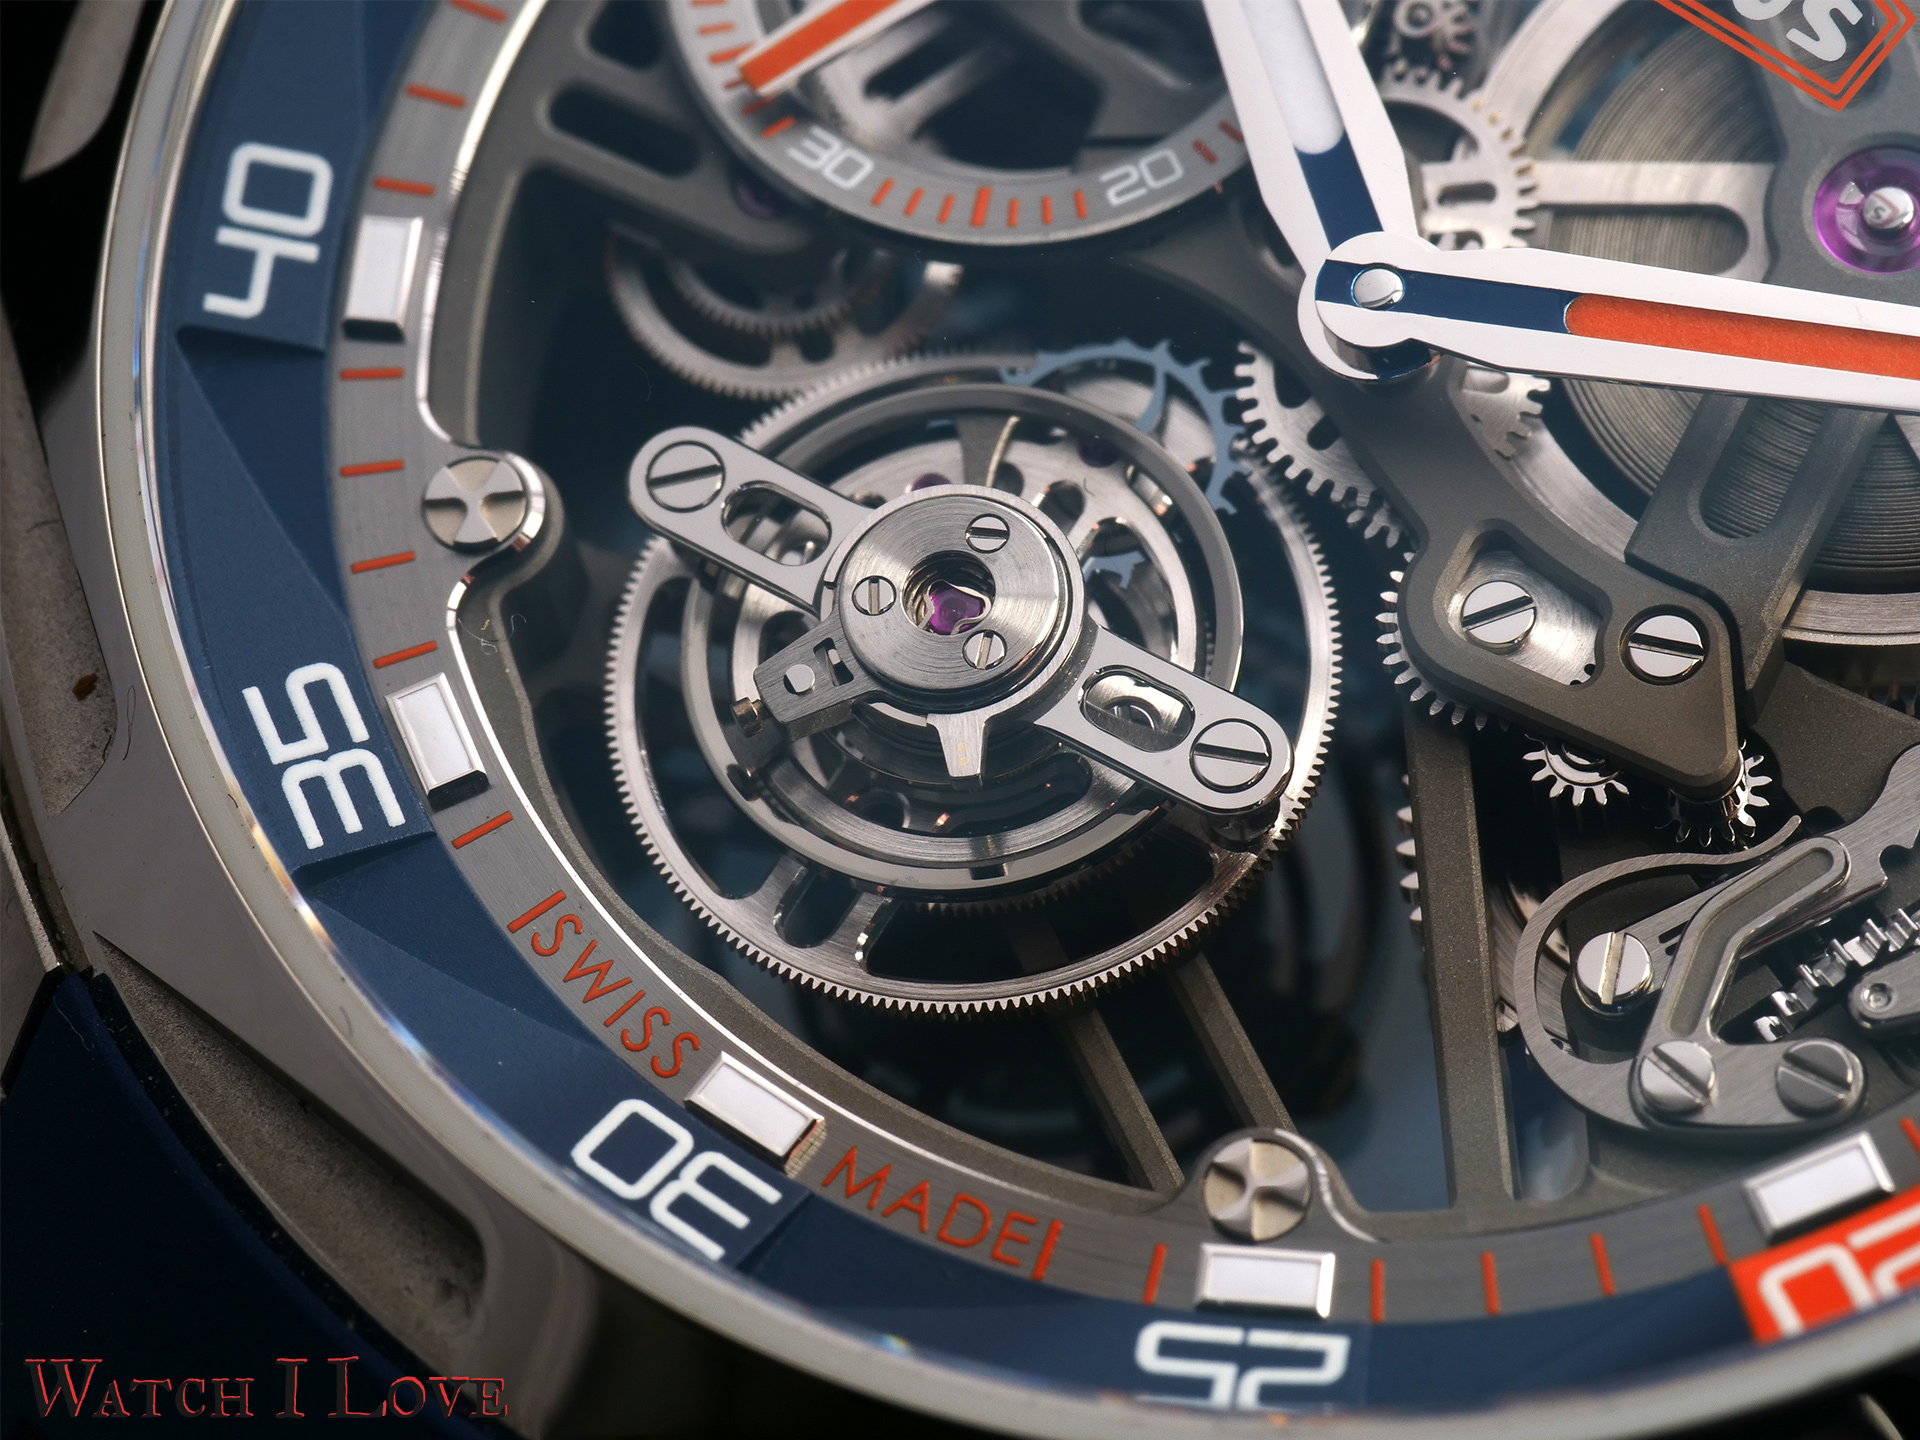 The tourbillon cage is nicely decorated